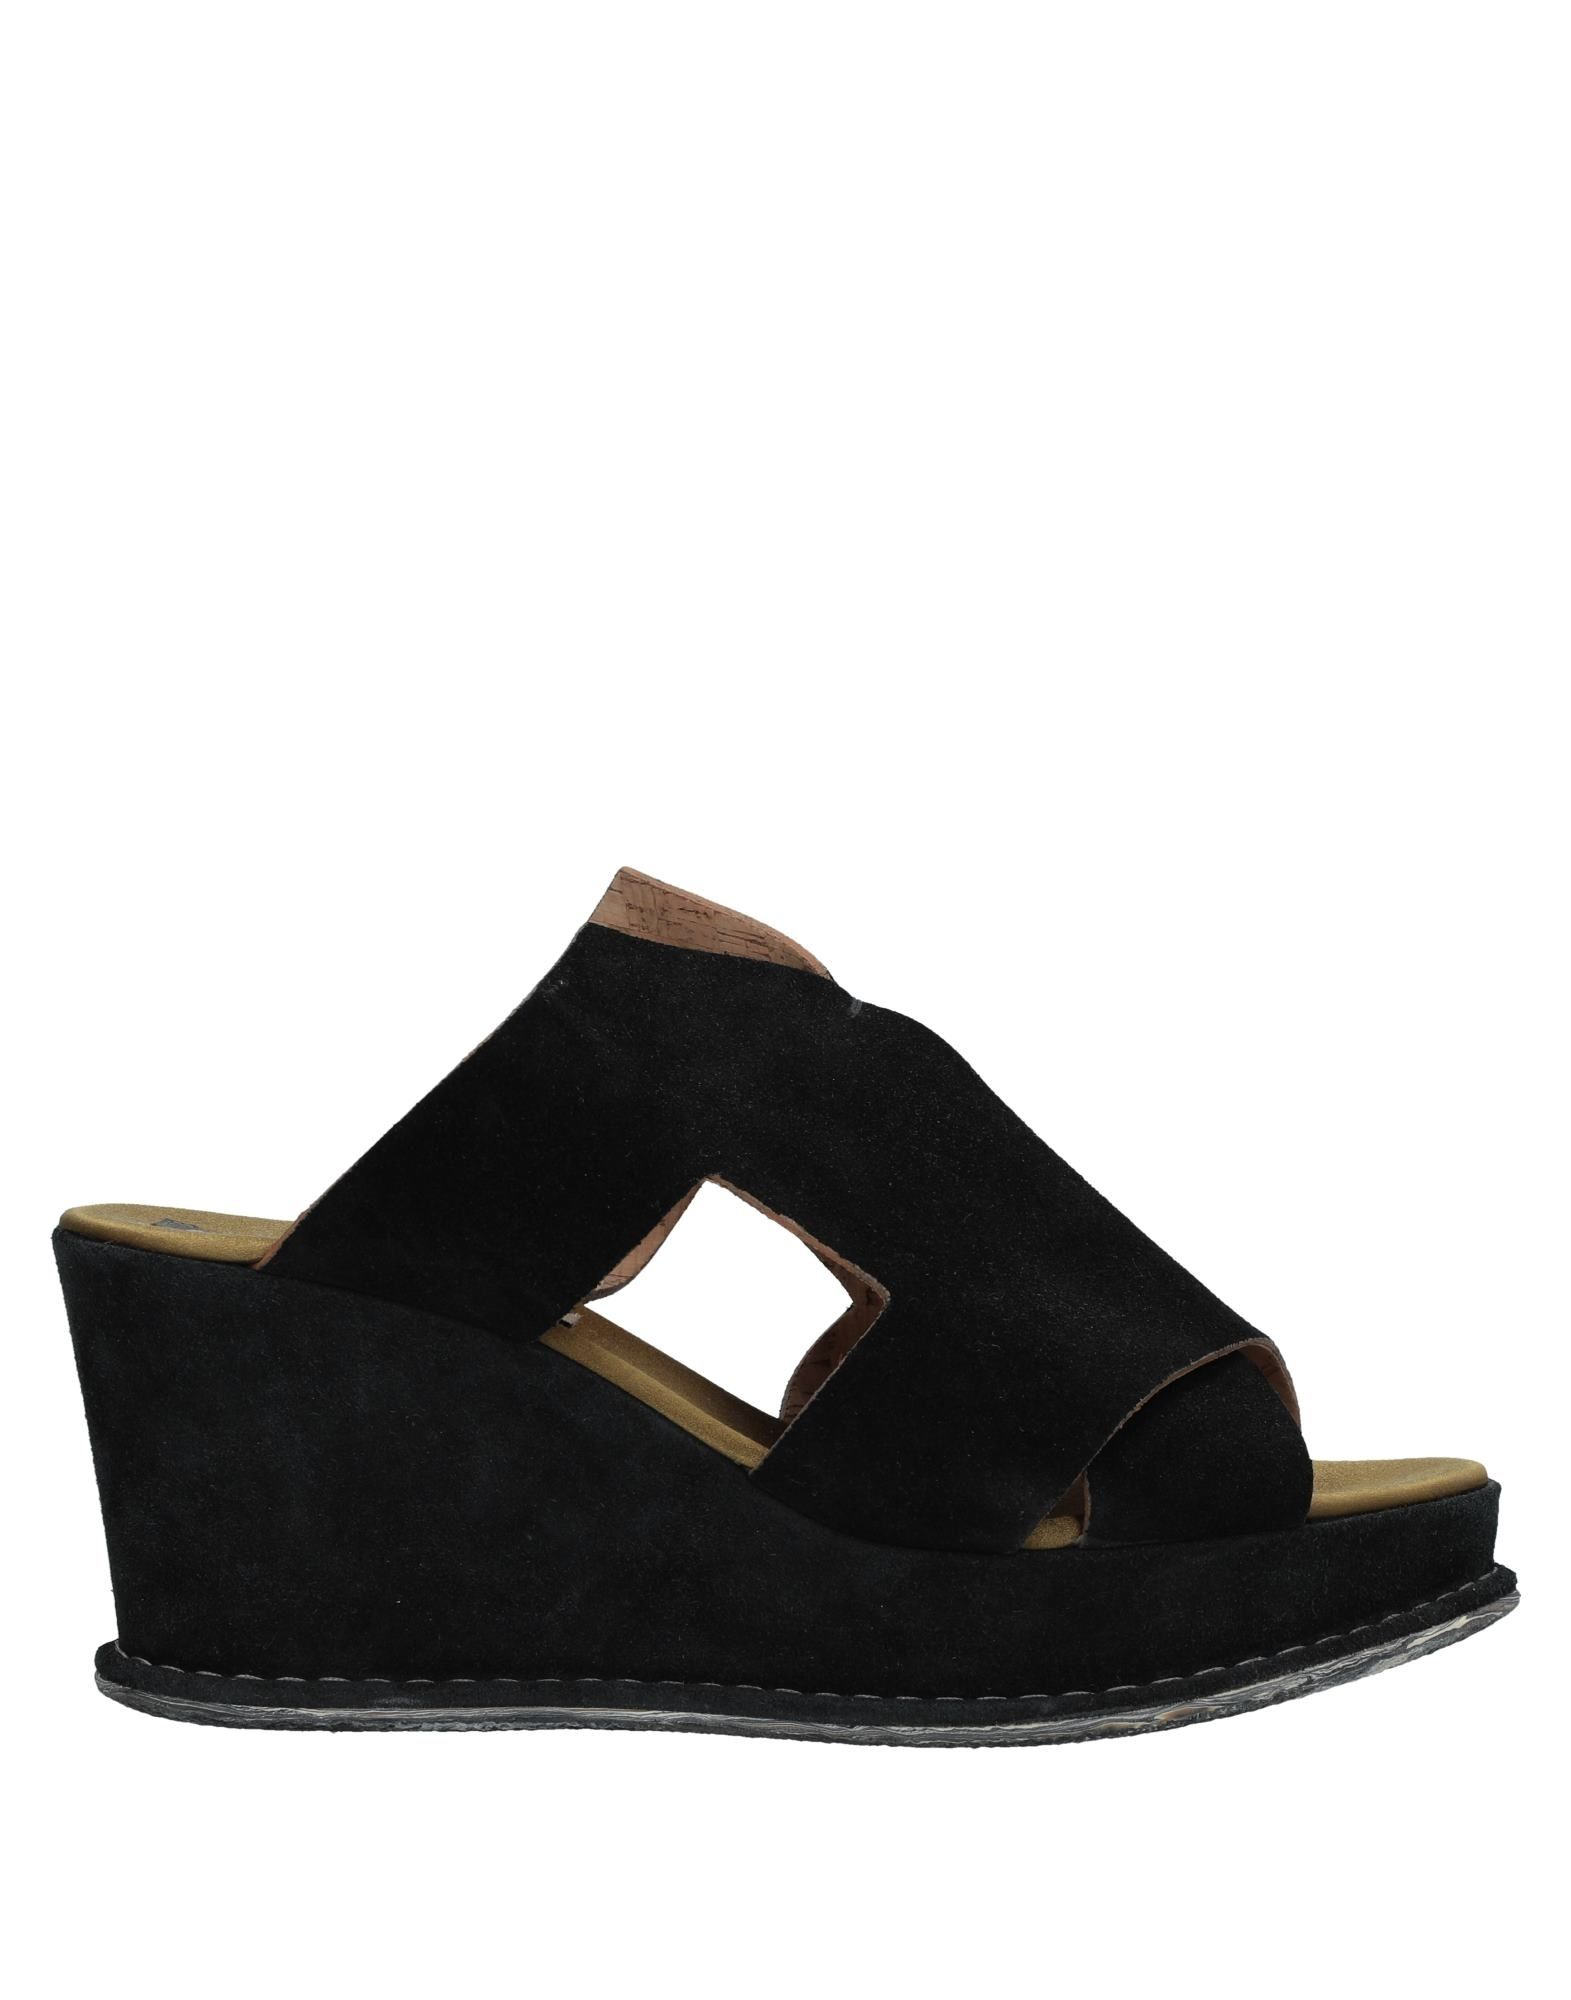 Alberto Fermani Sandals Sandals - Women Alberto Fermani Sandals Sandals online on  United Kingdom - 11532641JK df2e6d